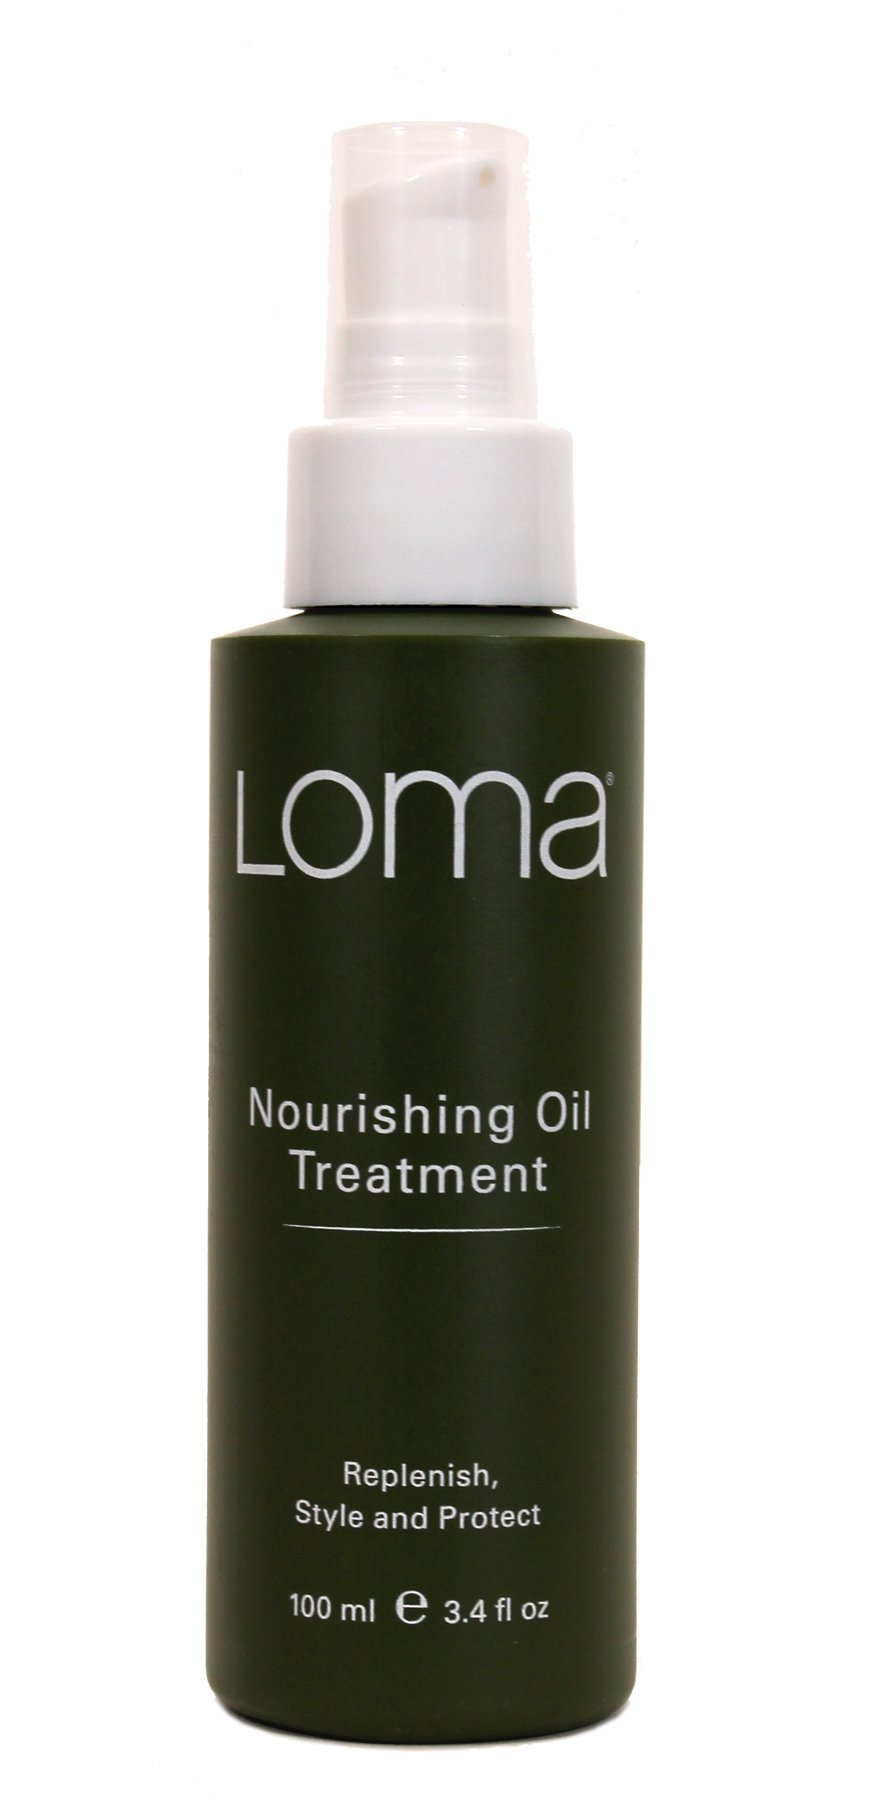 Loma Hair Care Nourishing Oil Treatment, Vanilla Bean/Orange, 3.4 fl. oz